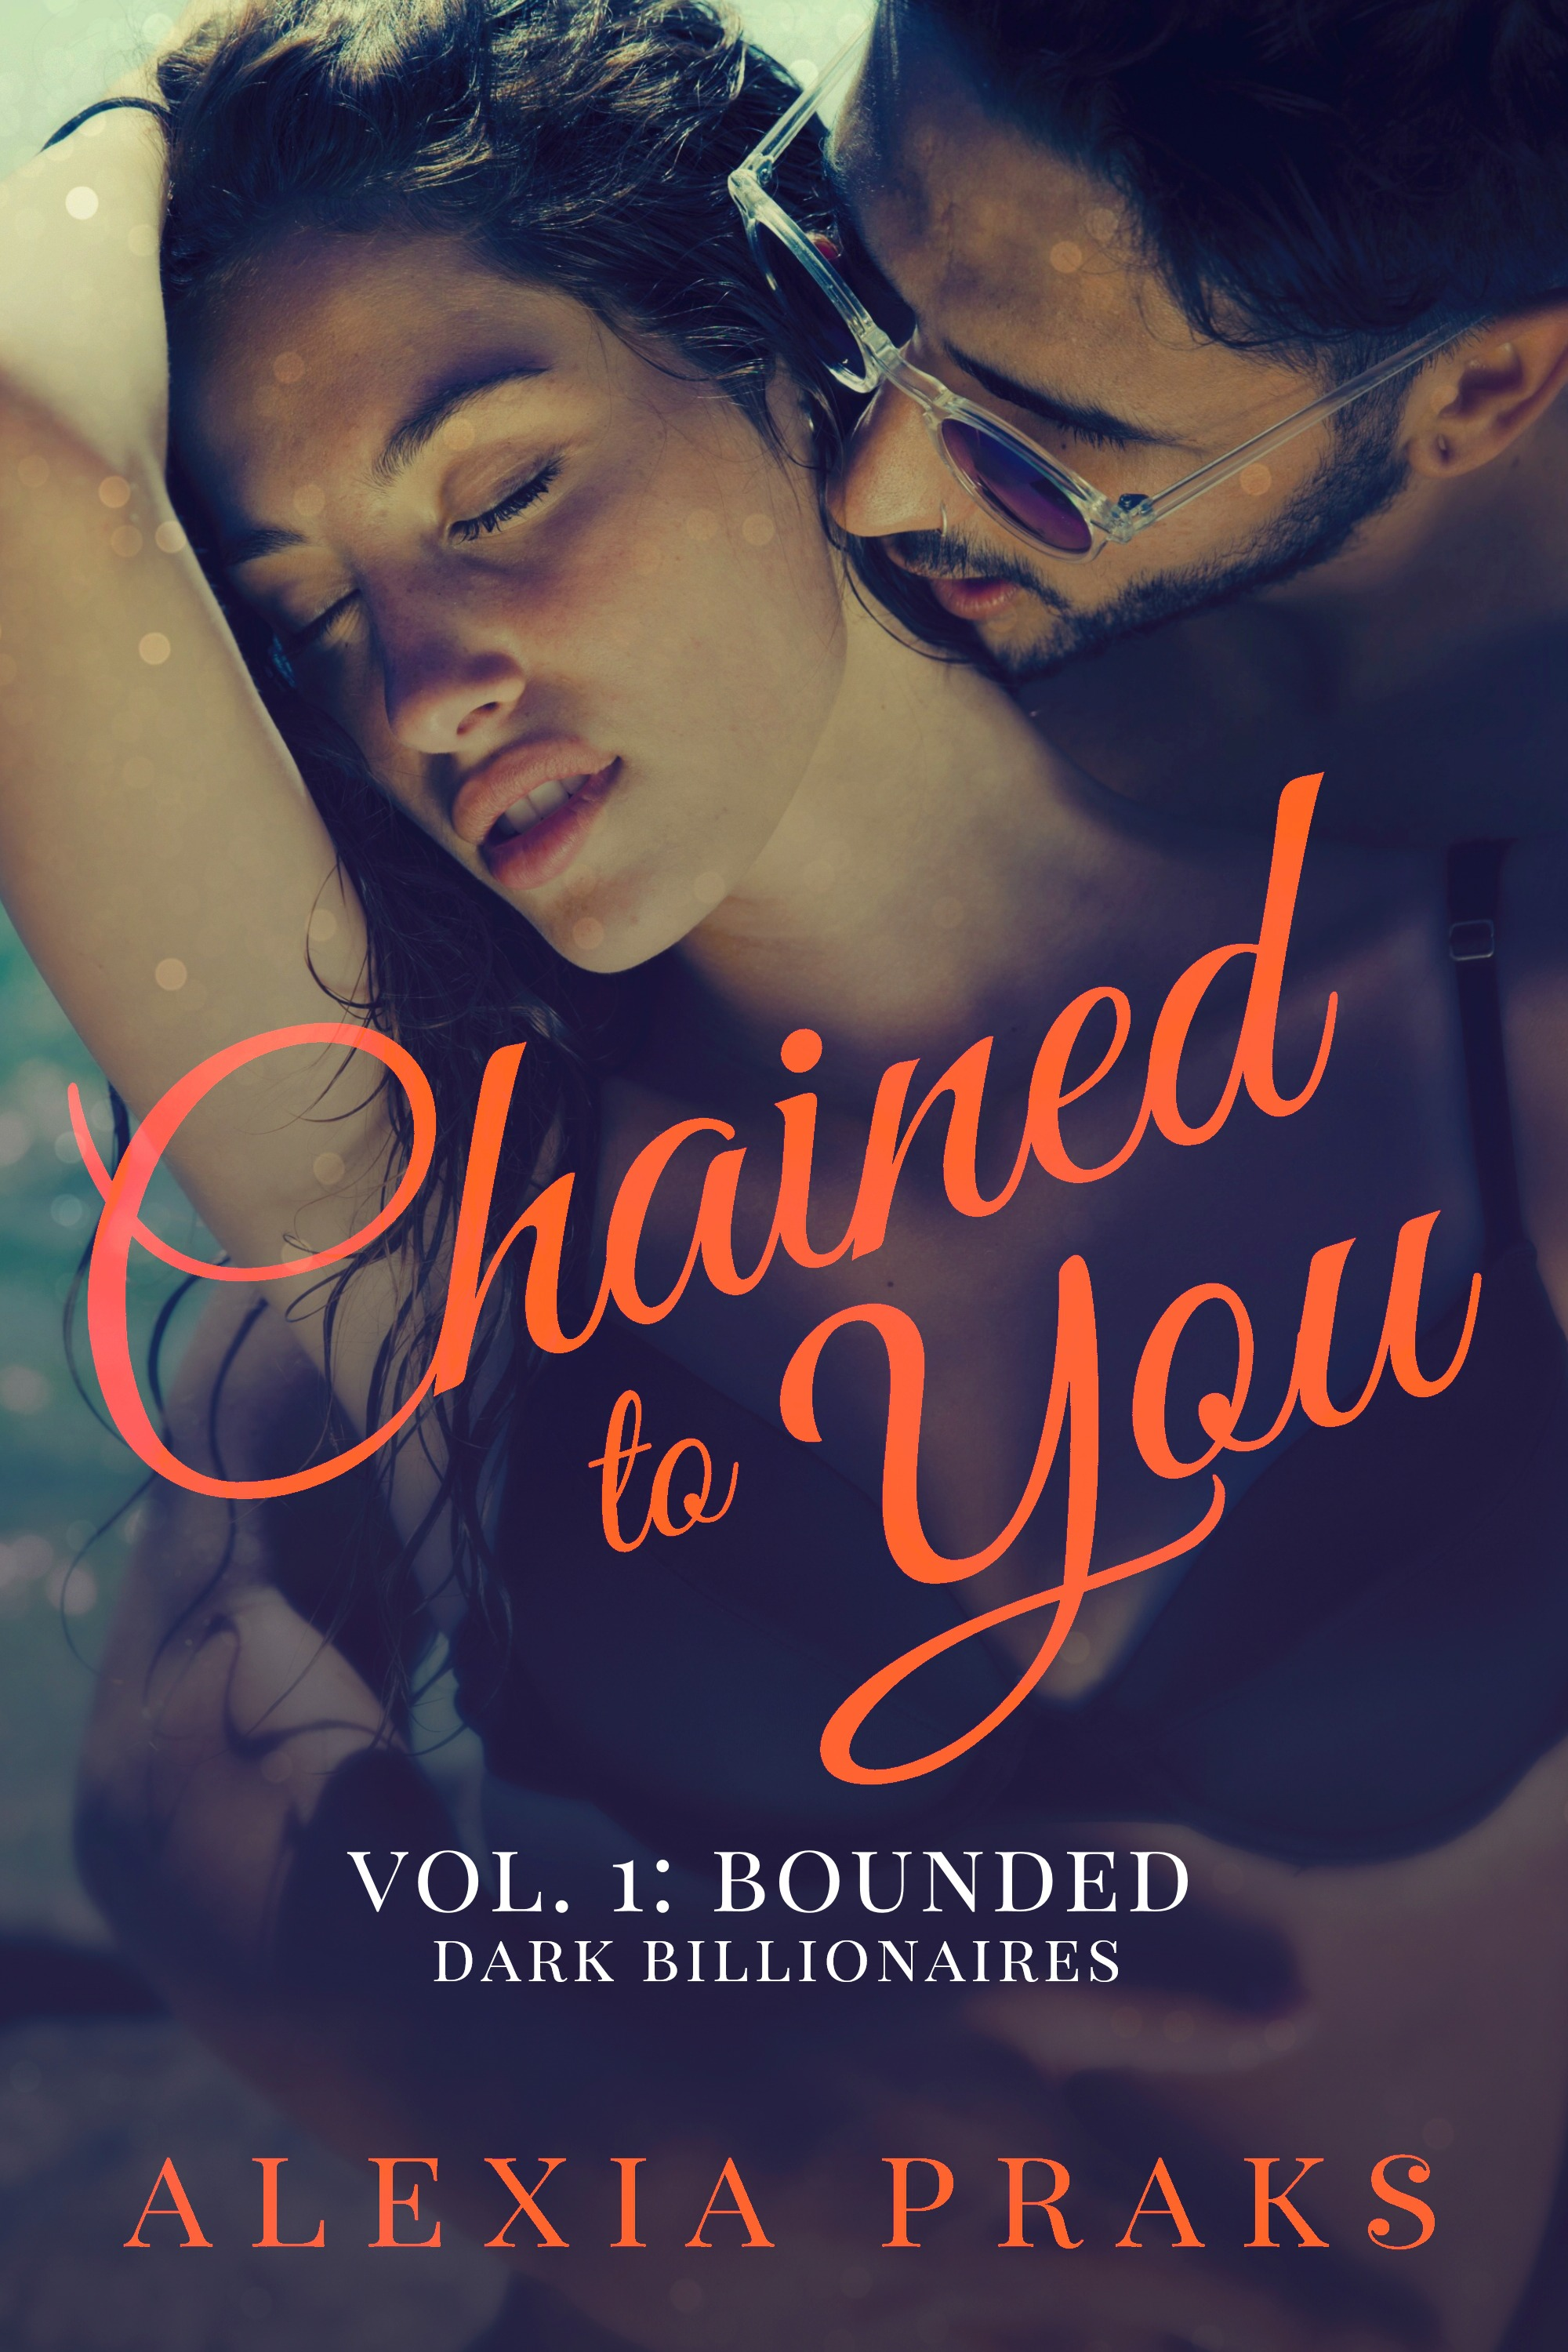 Chained to You Vol. 1 - Bounded by Alexia Praks